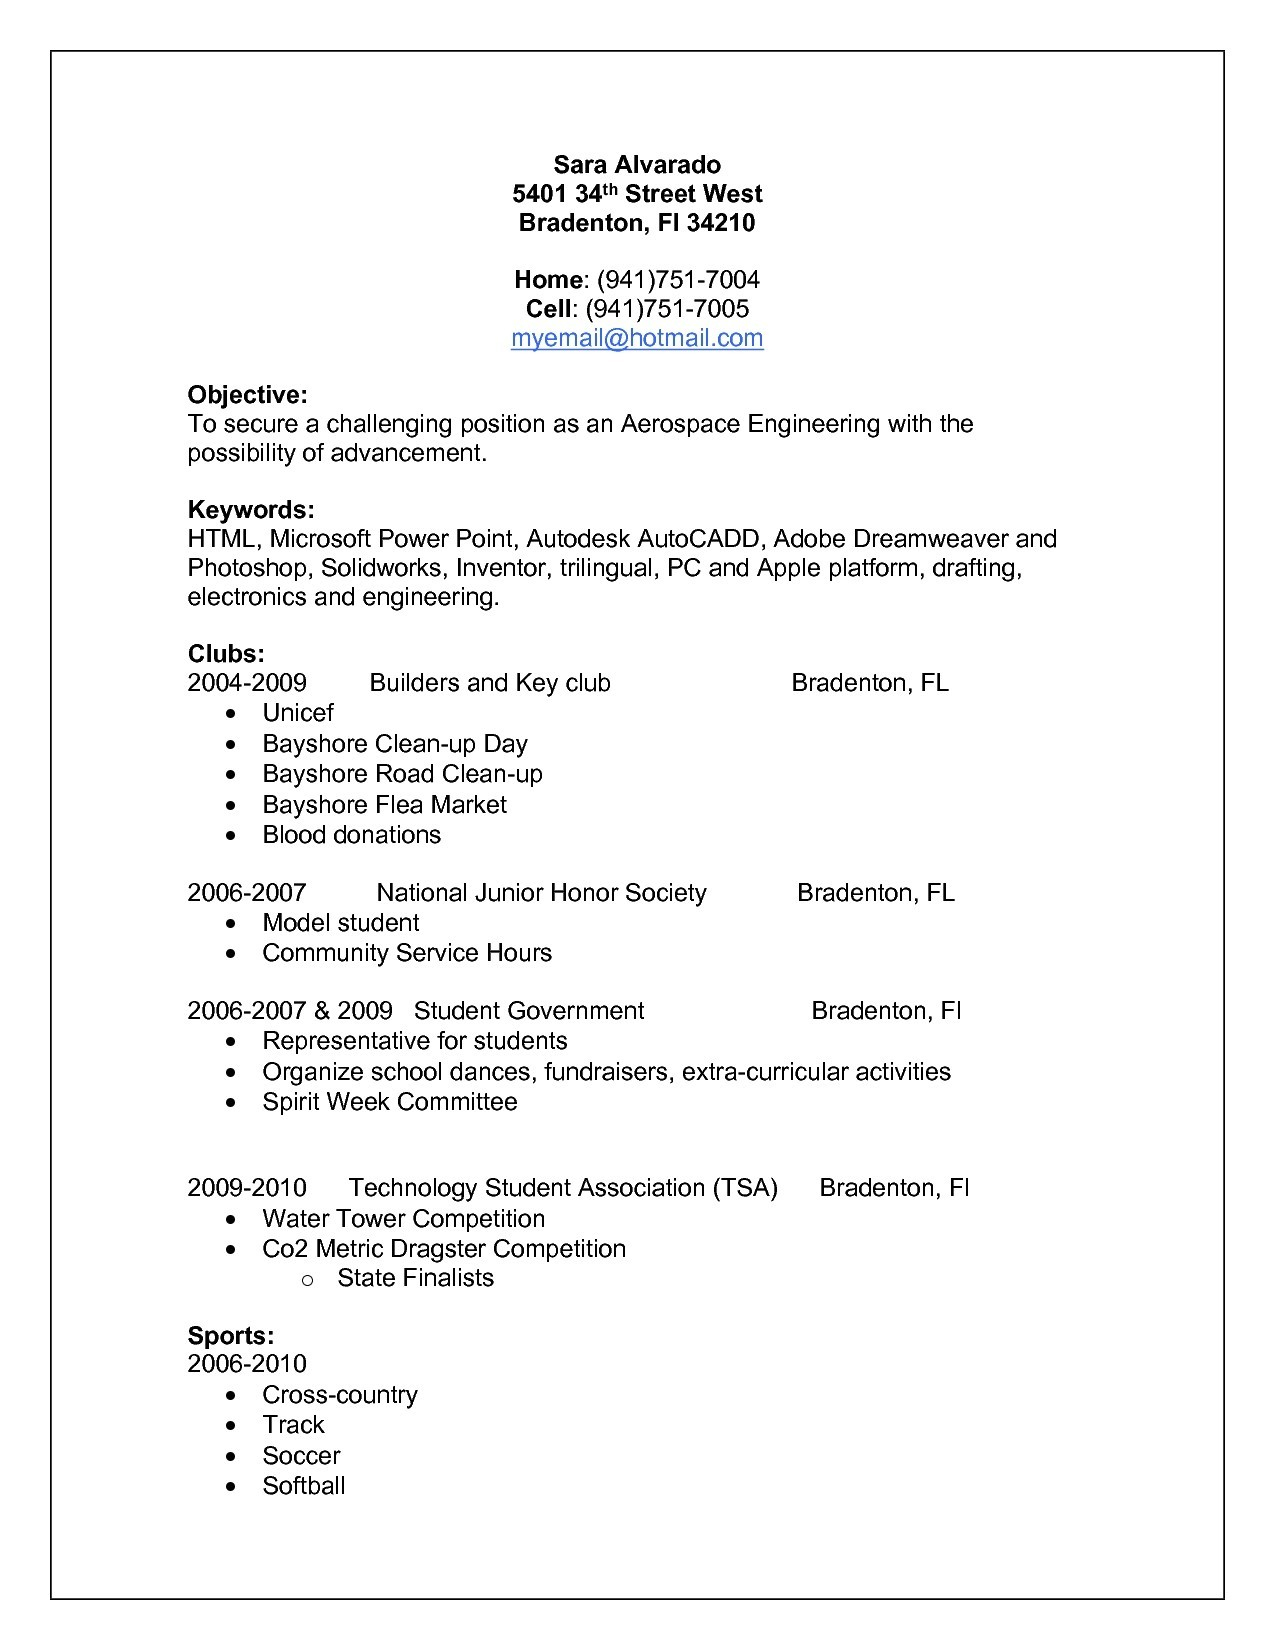 10 employment history resume examples